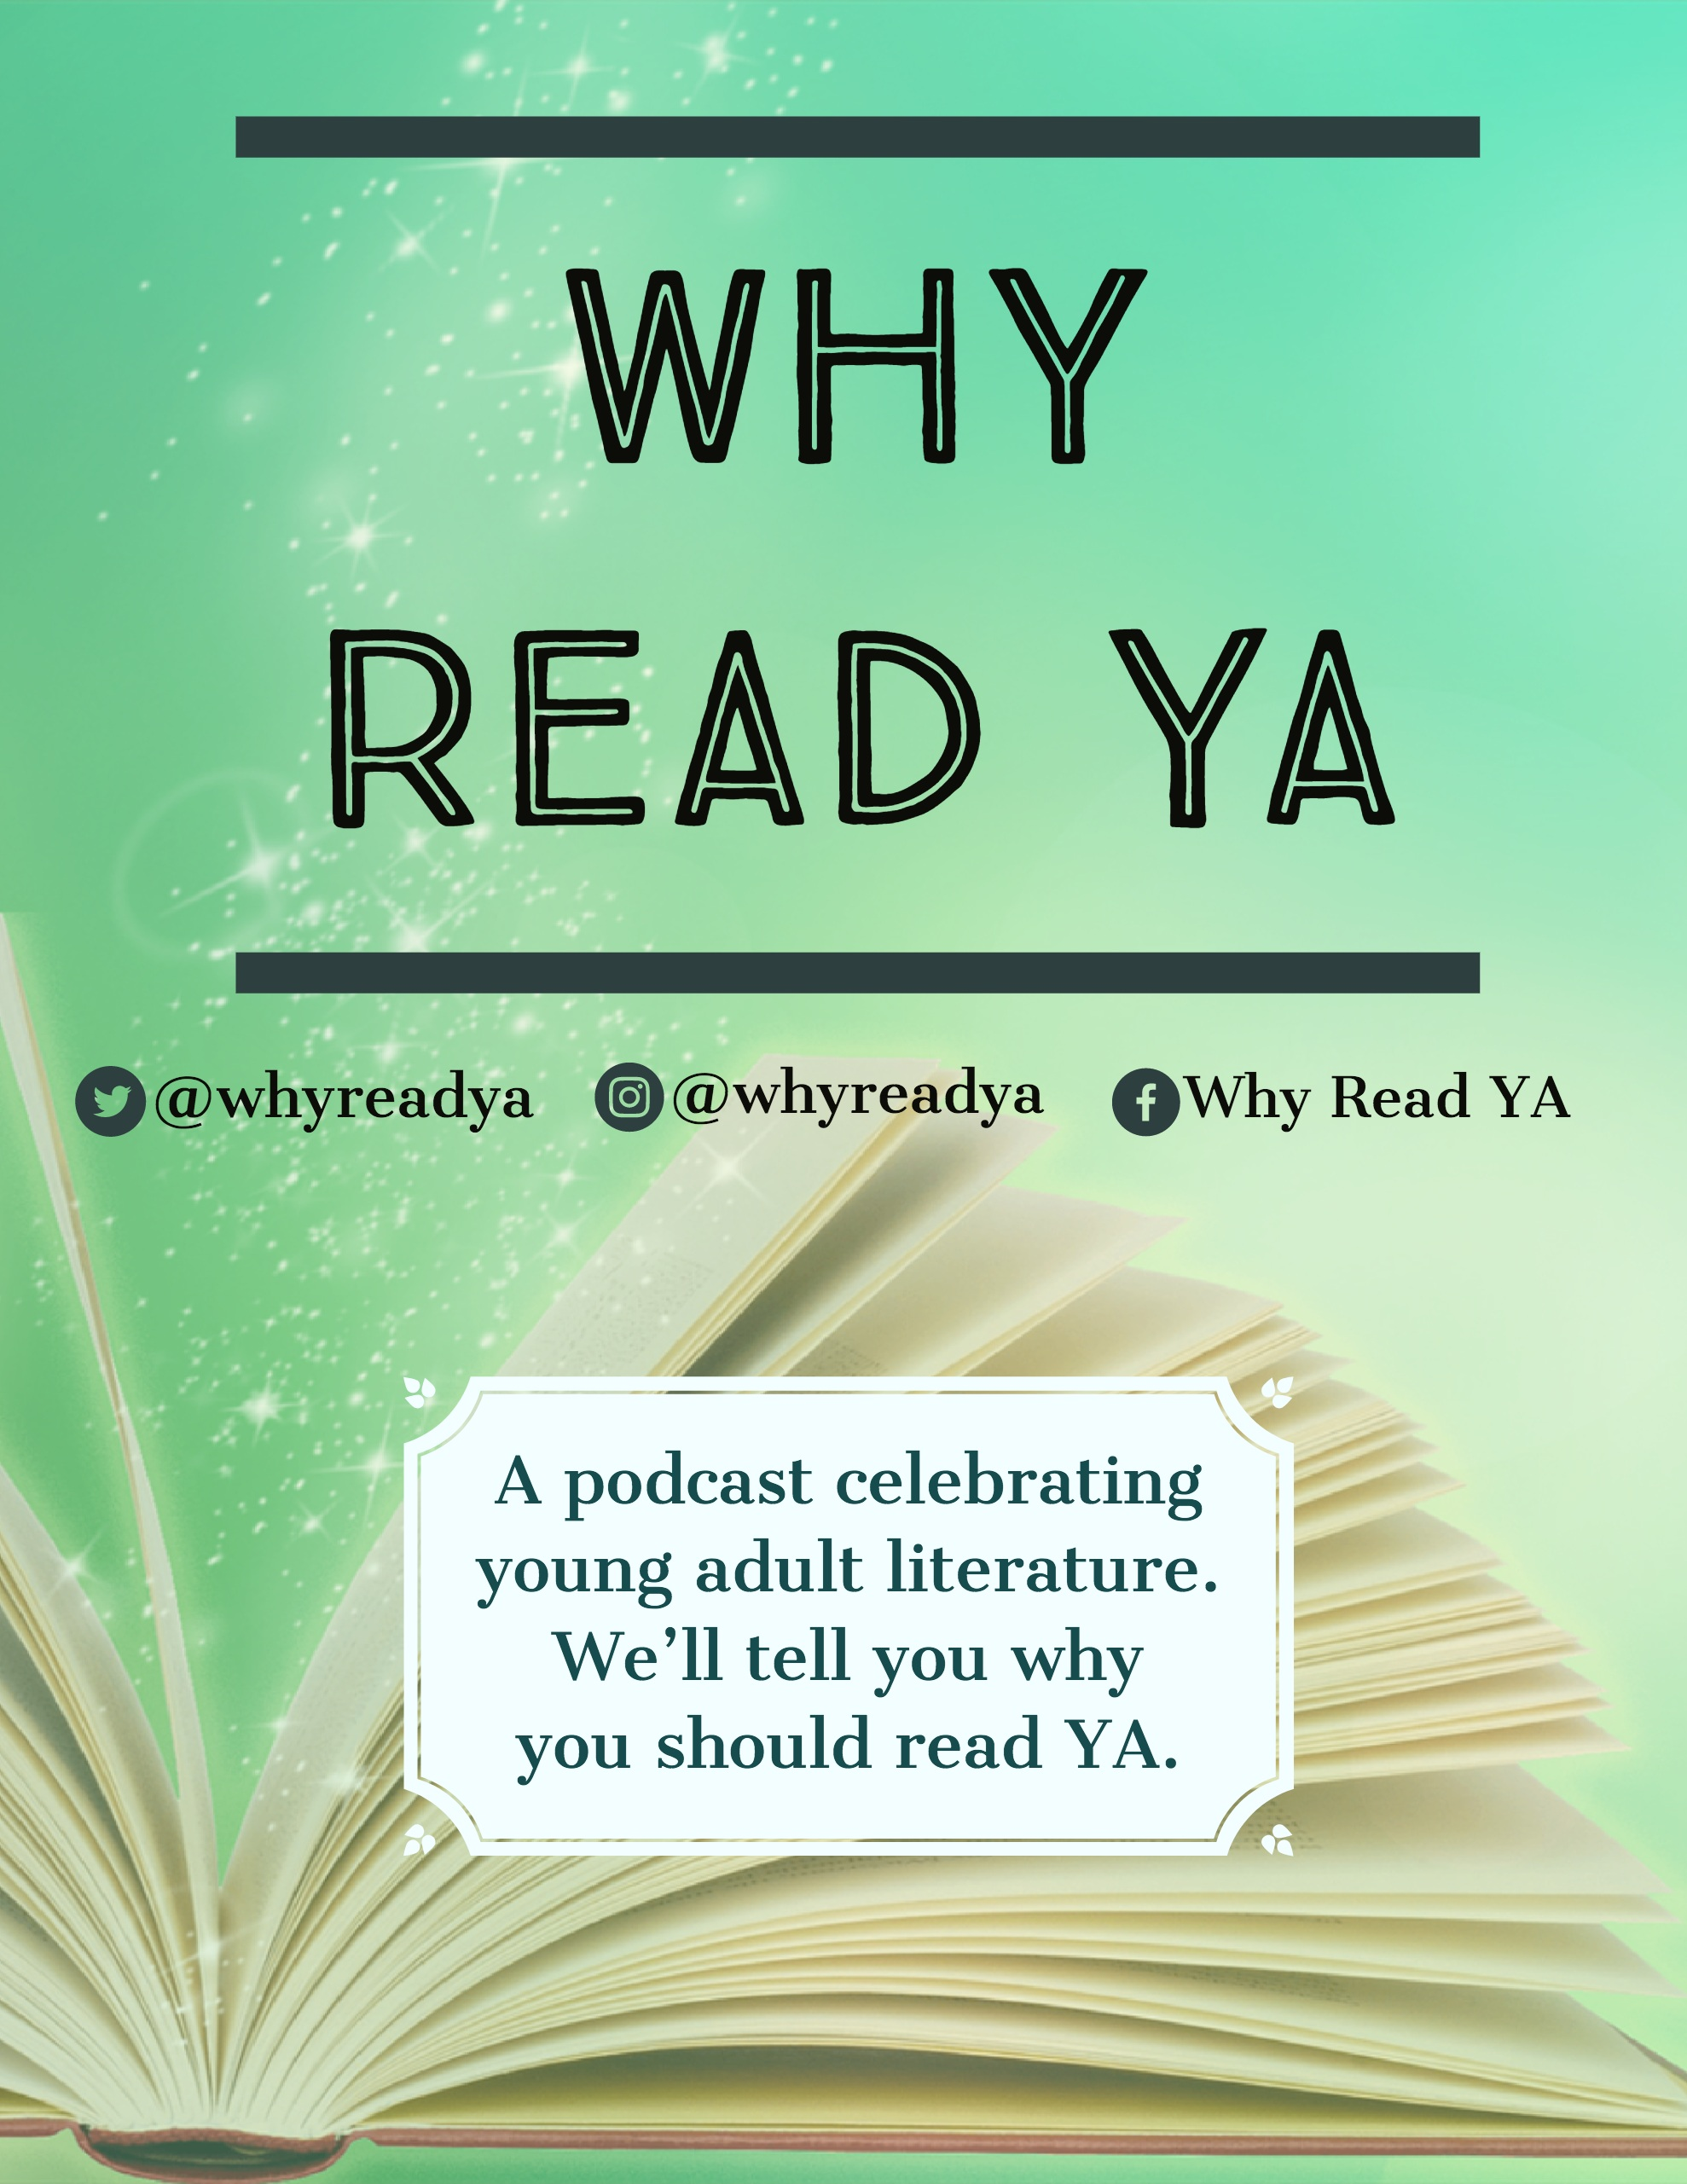 Why Read YA poster 3